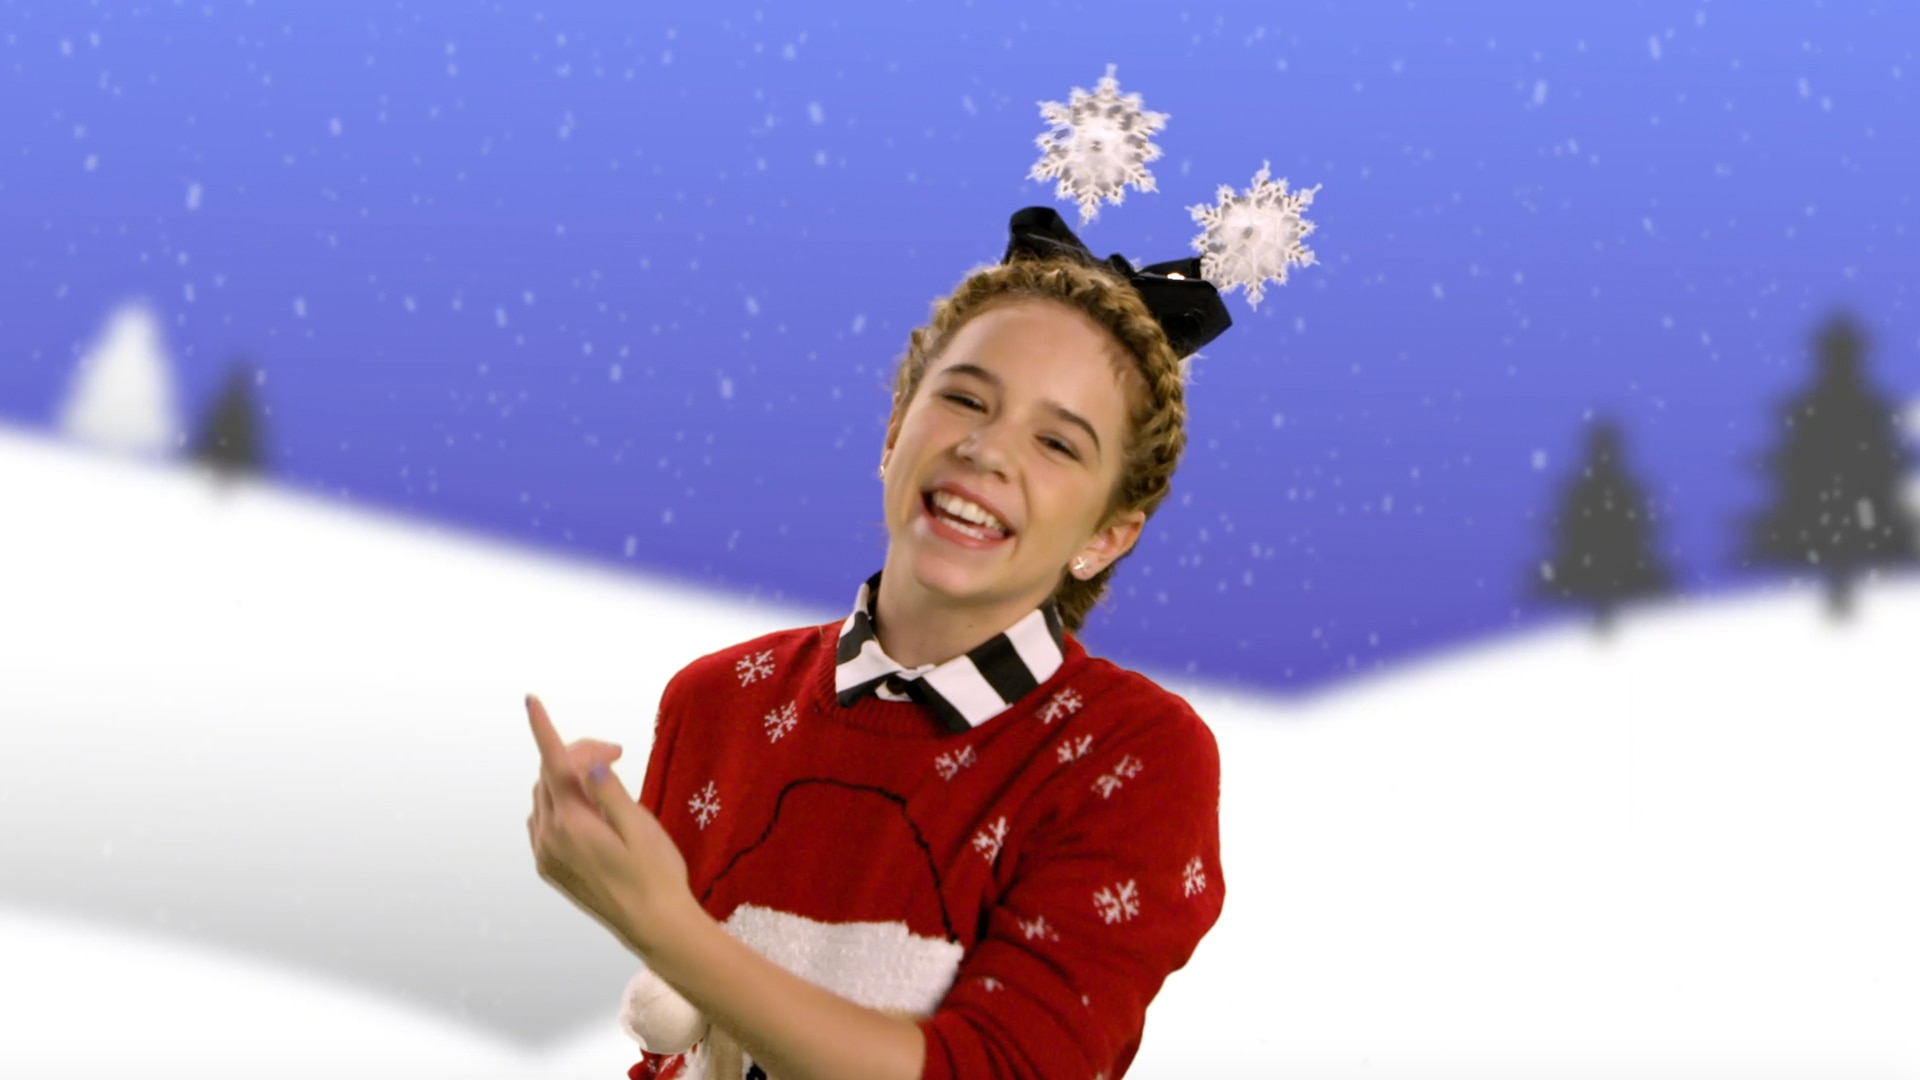 Kidz Bop Kids - Christmas (Baby Please C